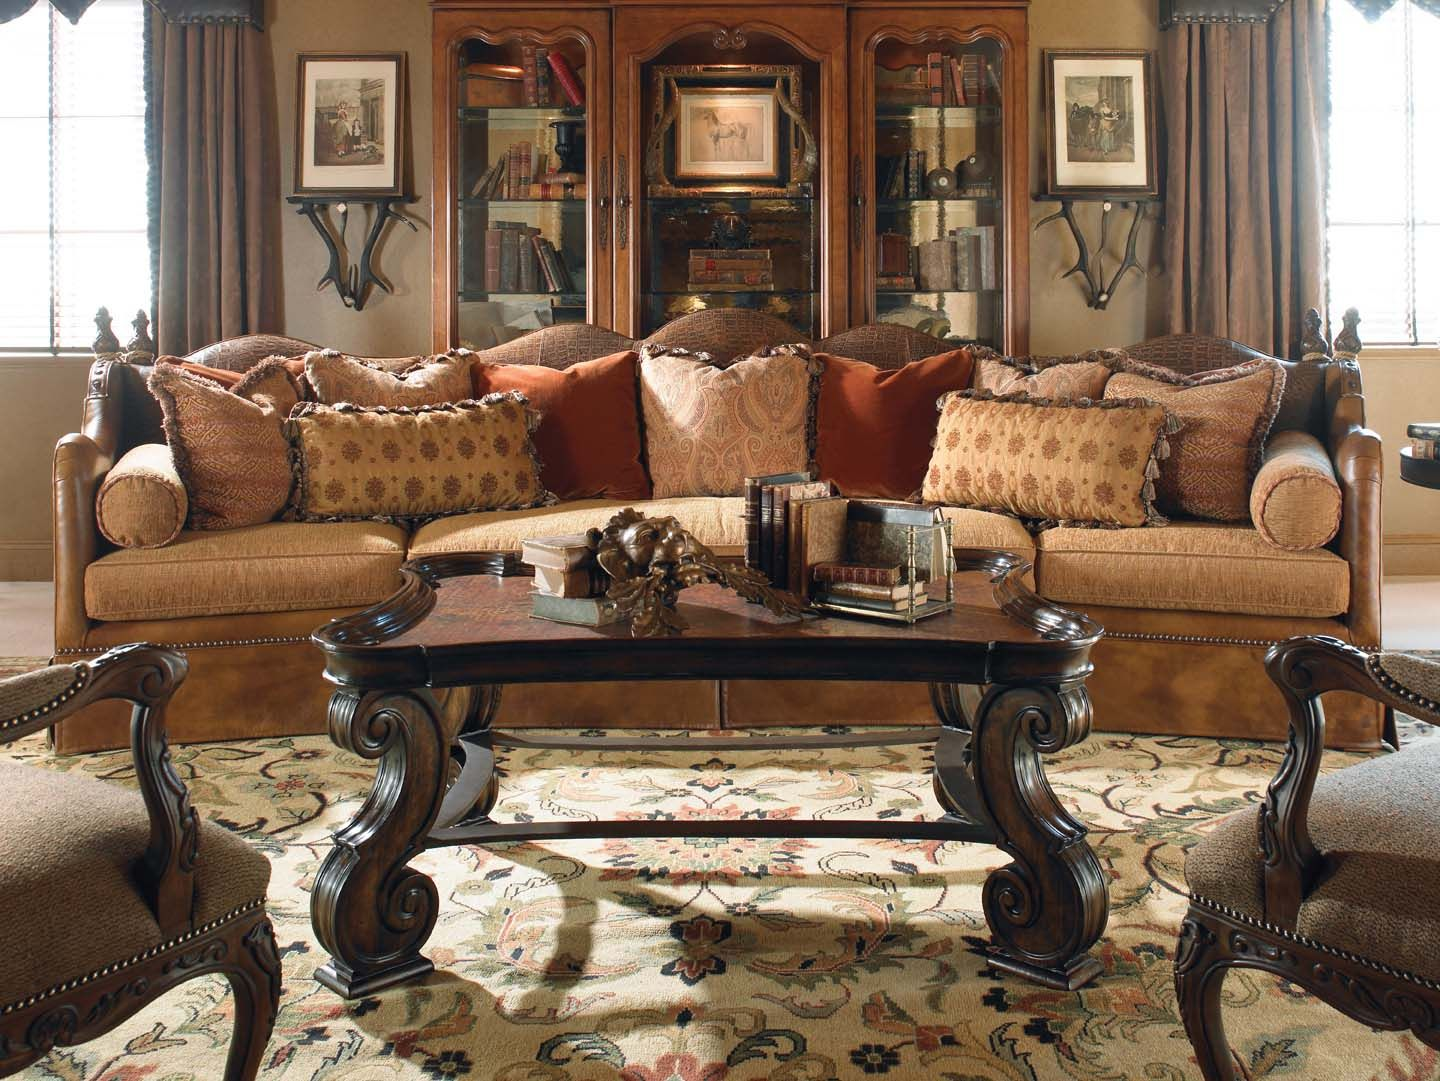 1000 Images About Furniture On Pinterest Classic Furniture Old